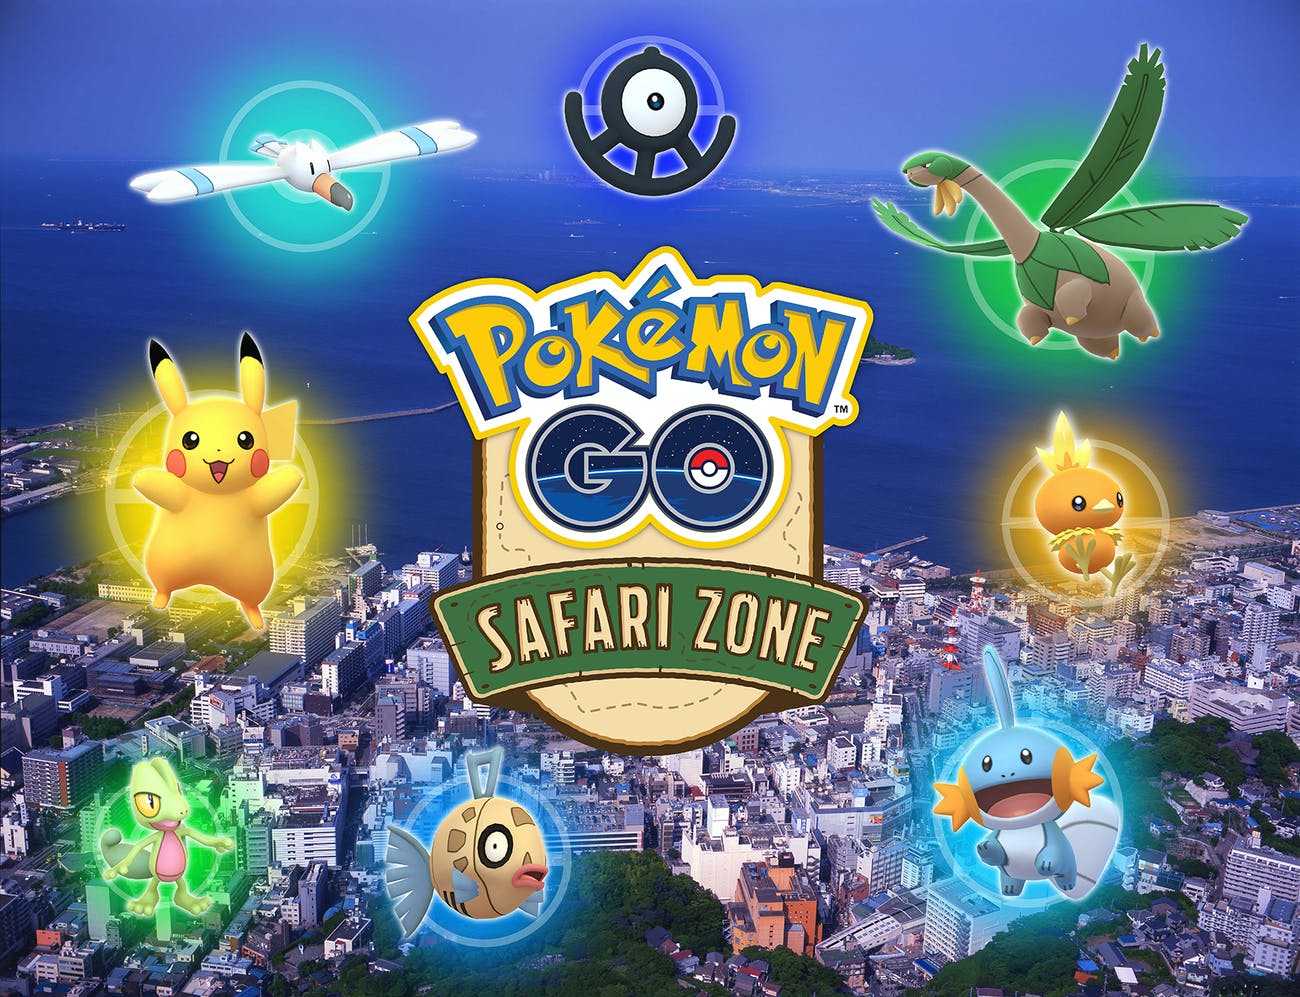 Pokemon GO Safari Zone Yokosuka